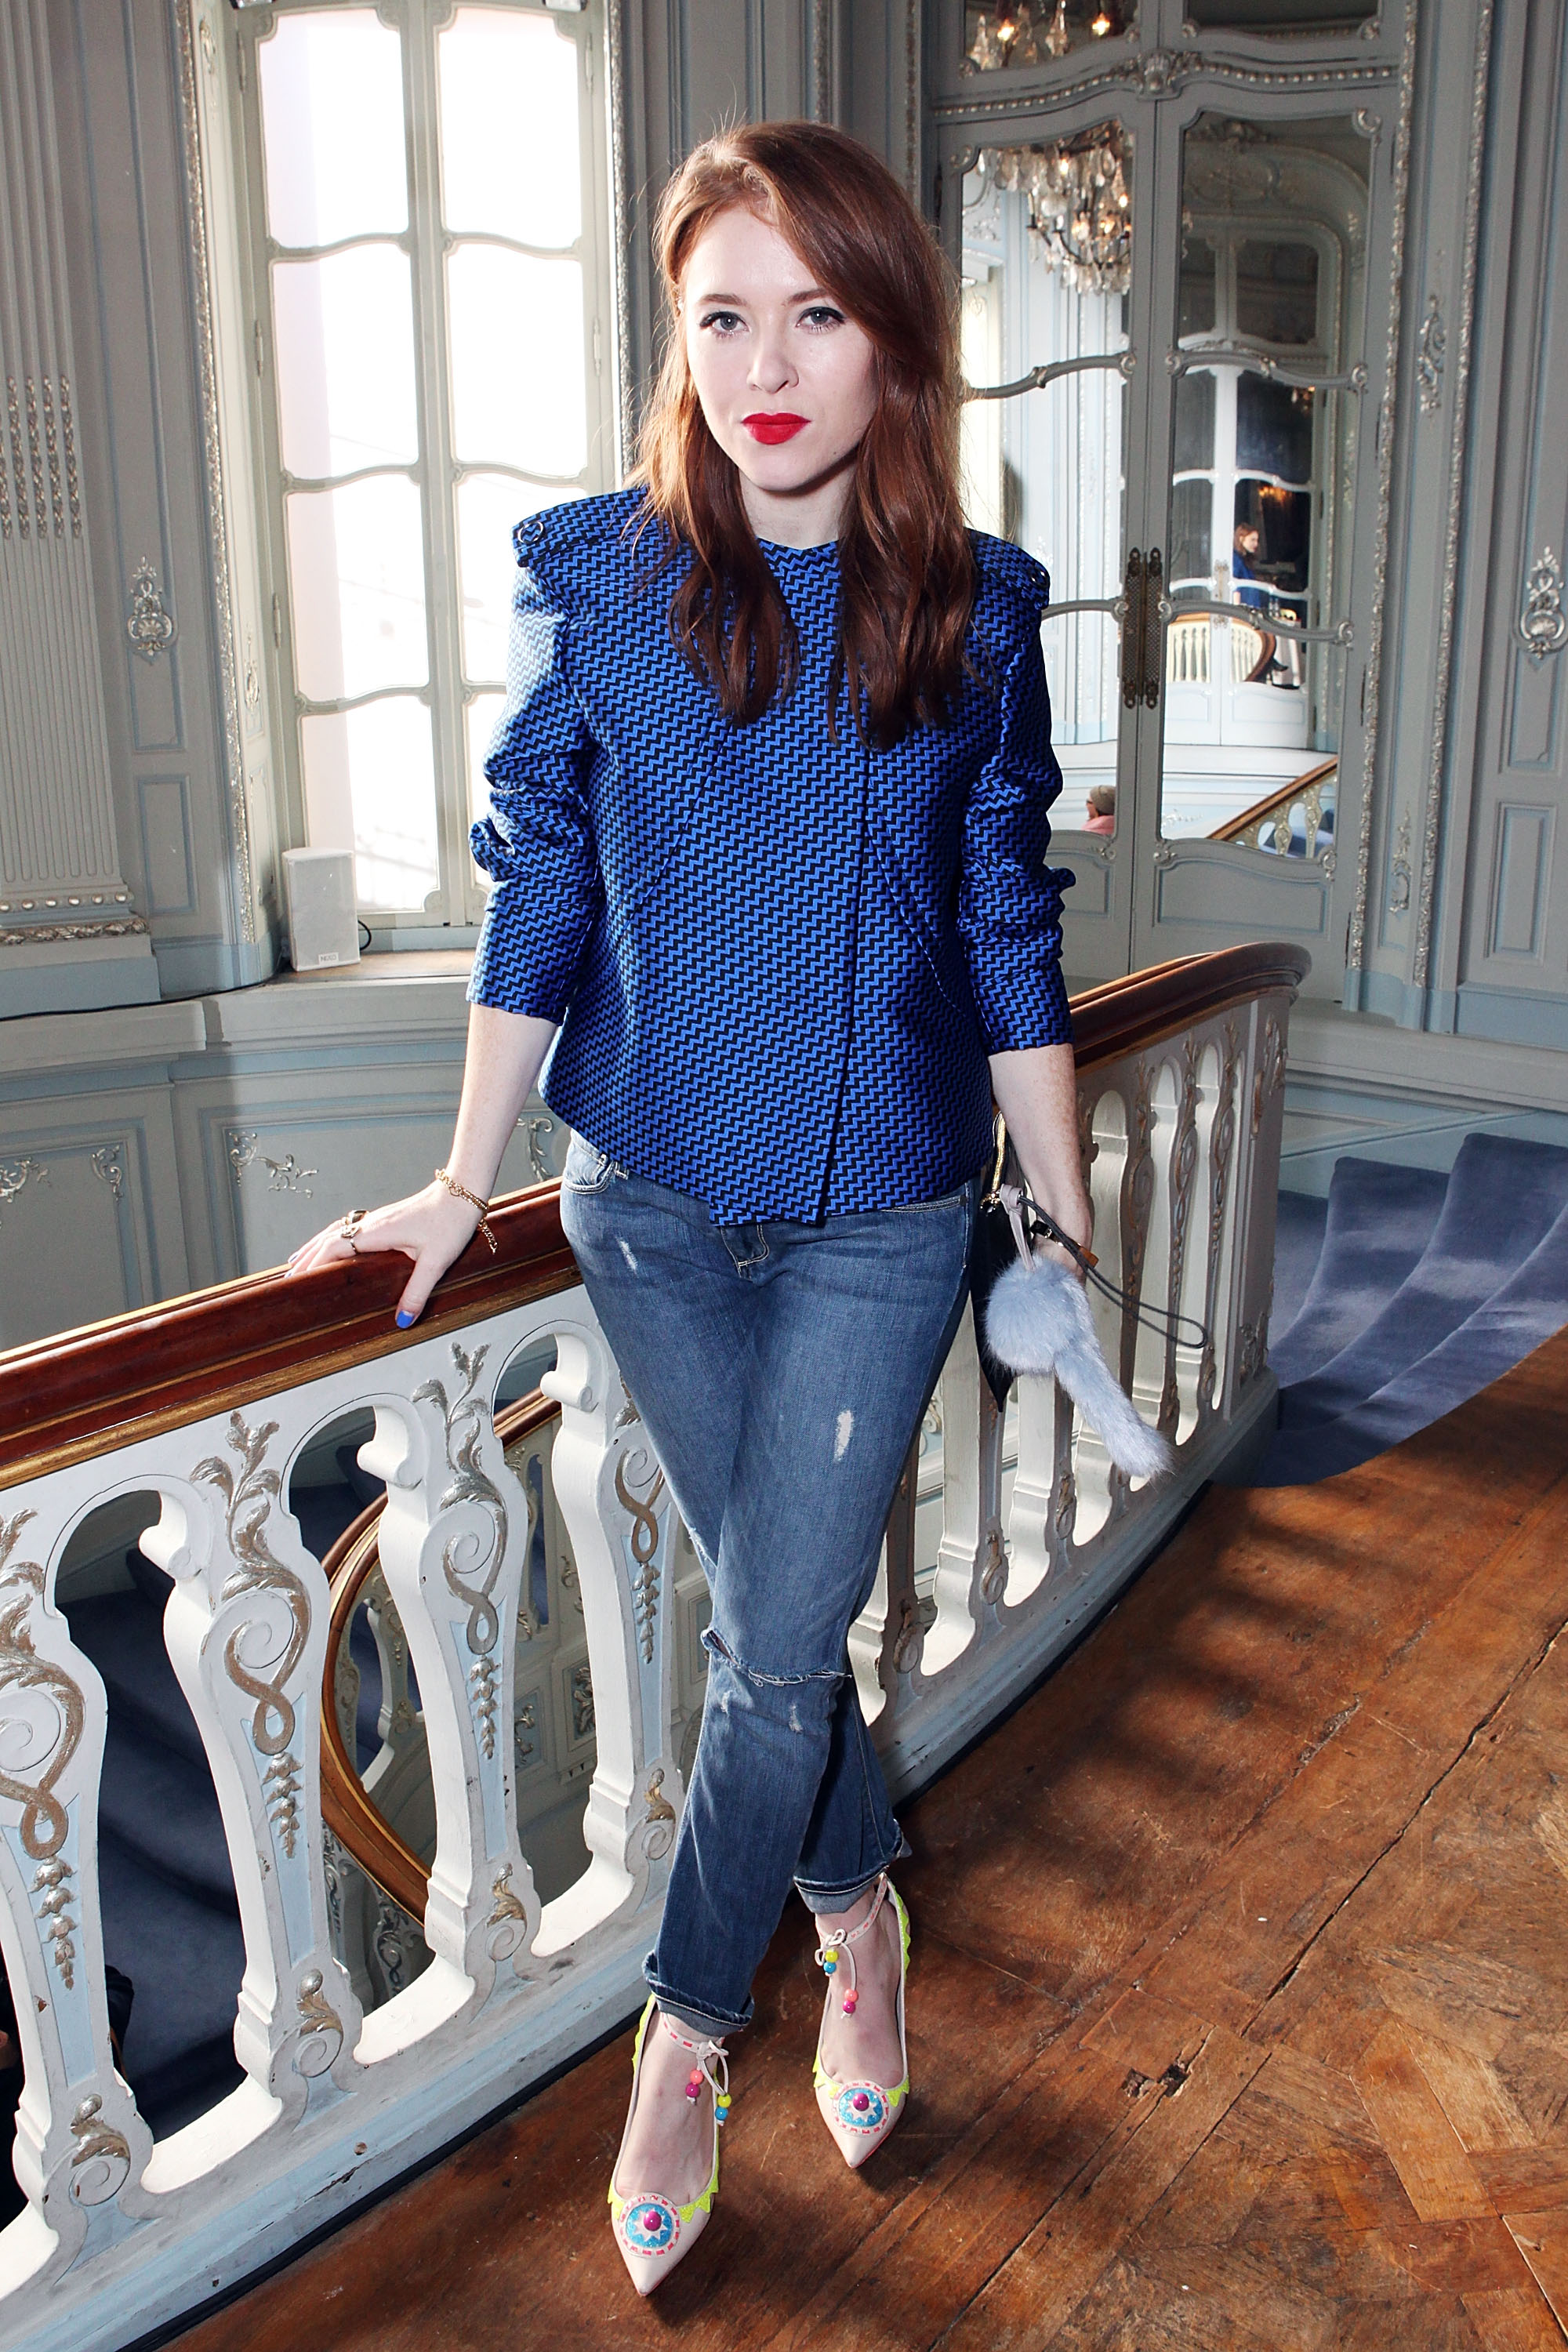 Angela Scanlon<br /> Photo by David M. Benett/Getty Images for Pringle of Scotland